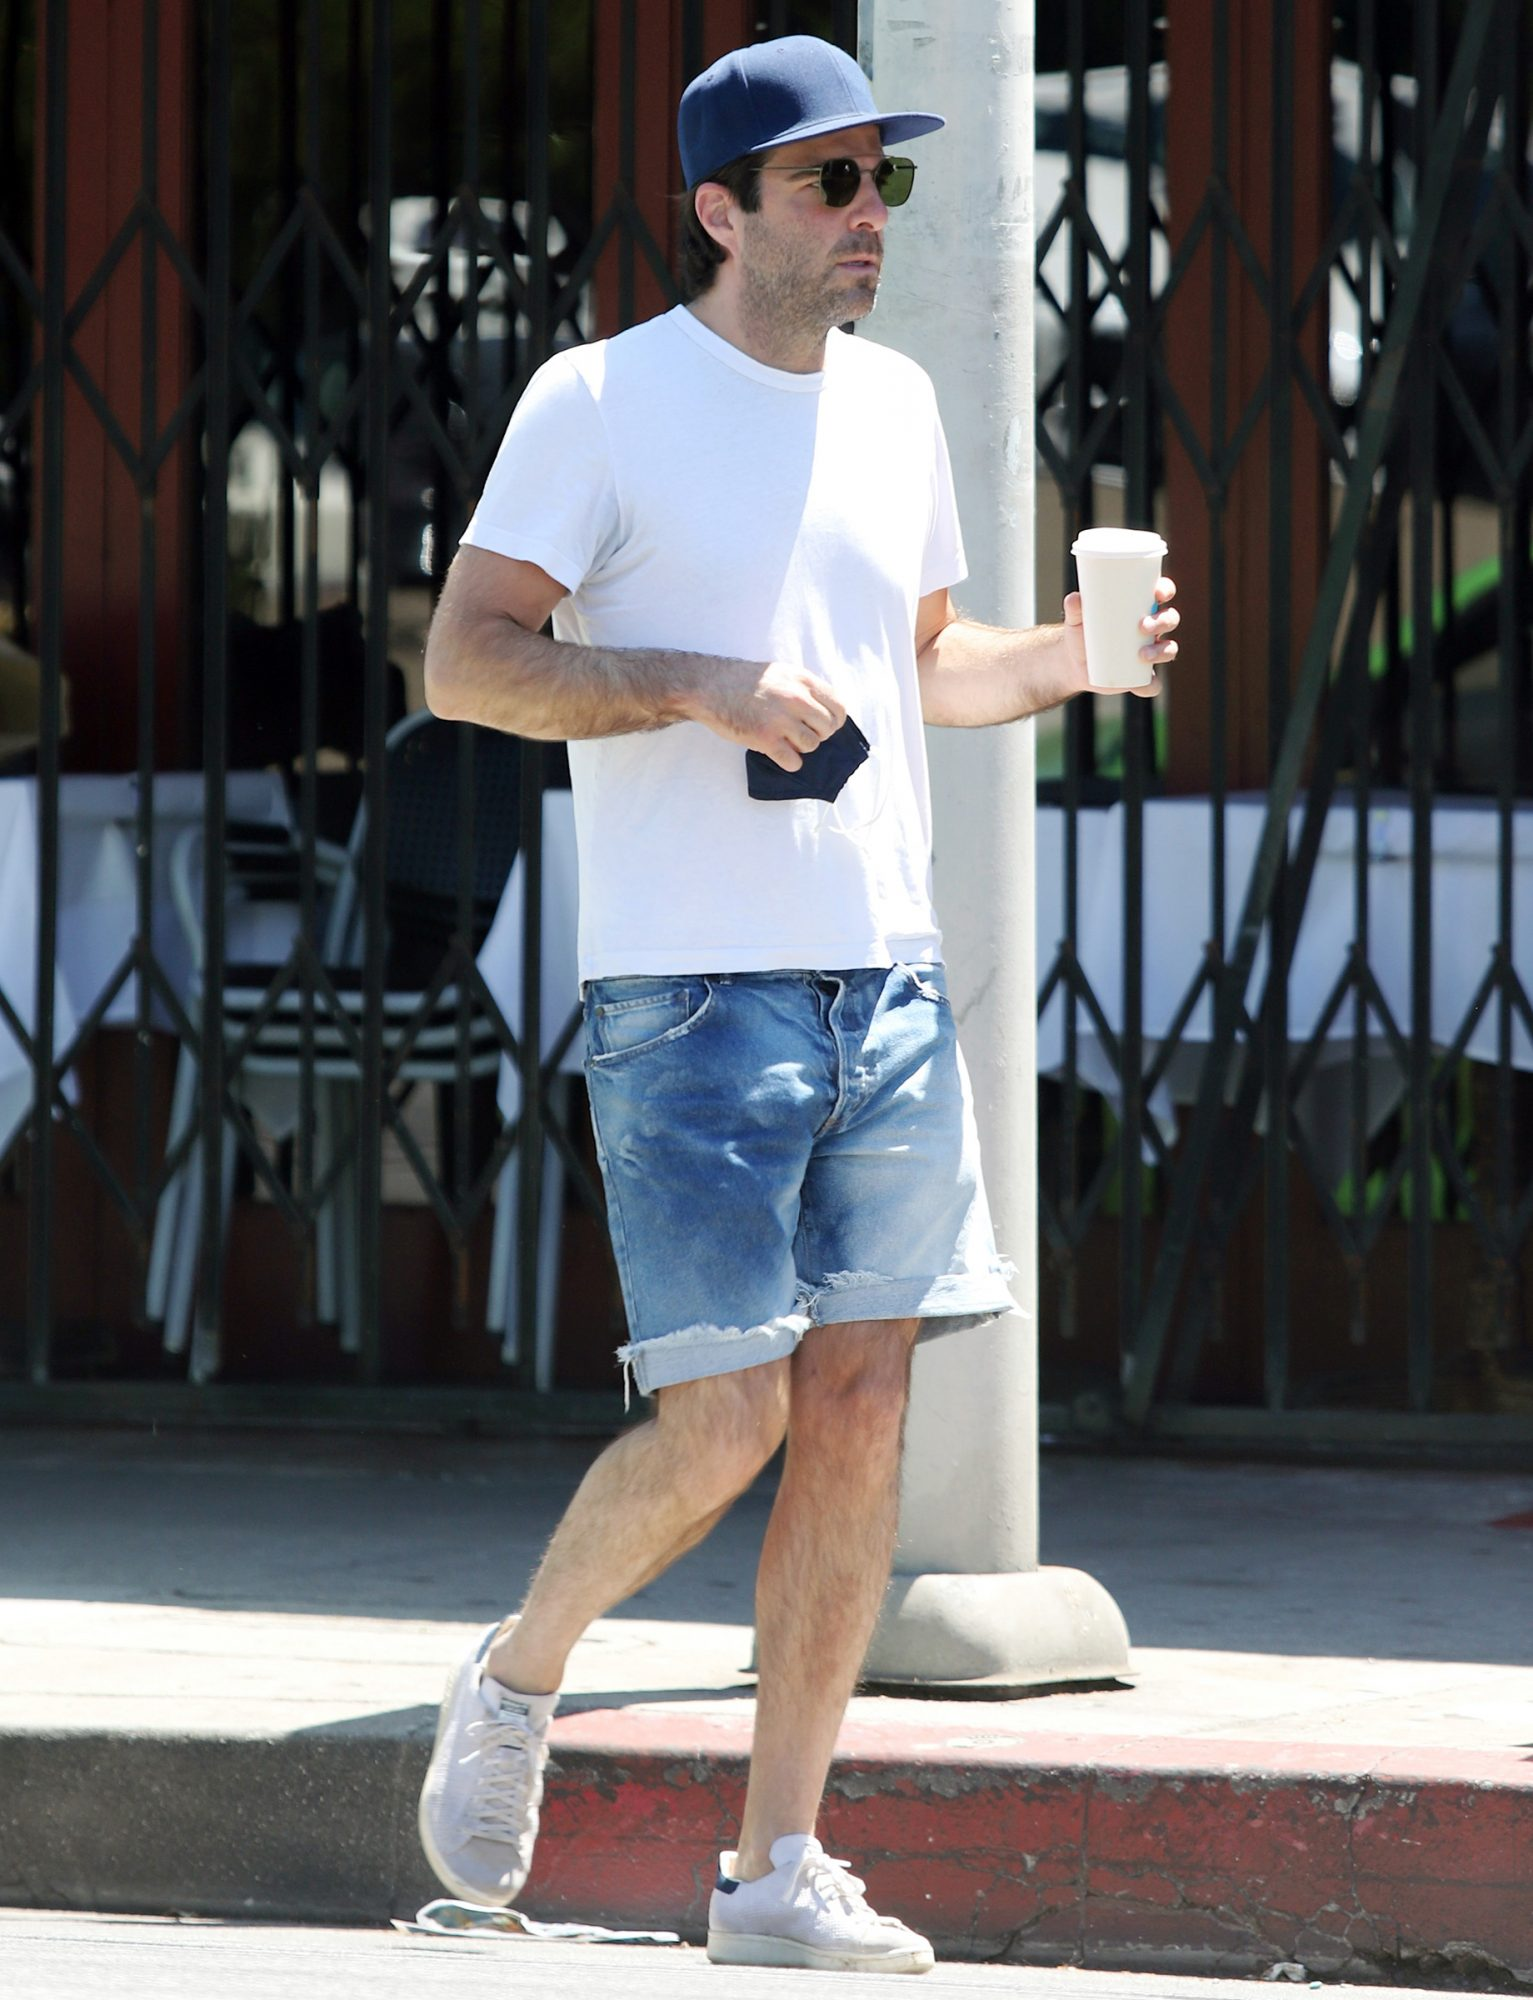 Zackary Quinto Steps Out For a Coffee Run in Los Angeles.